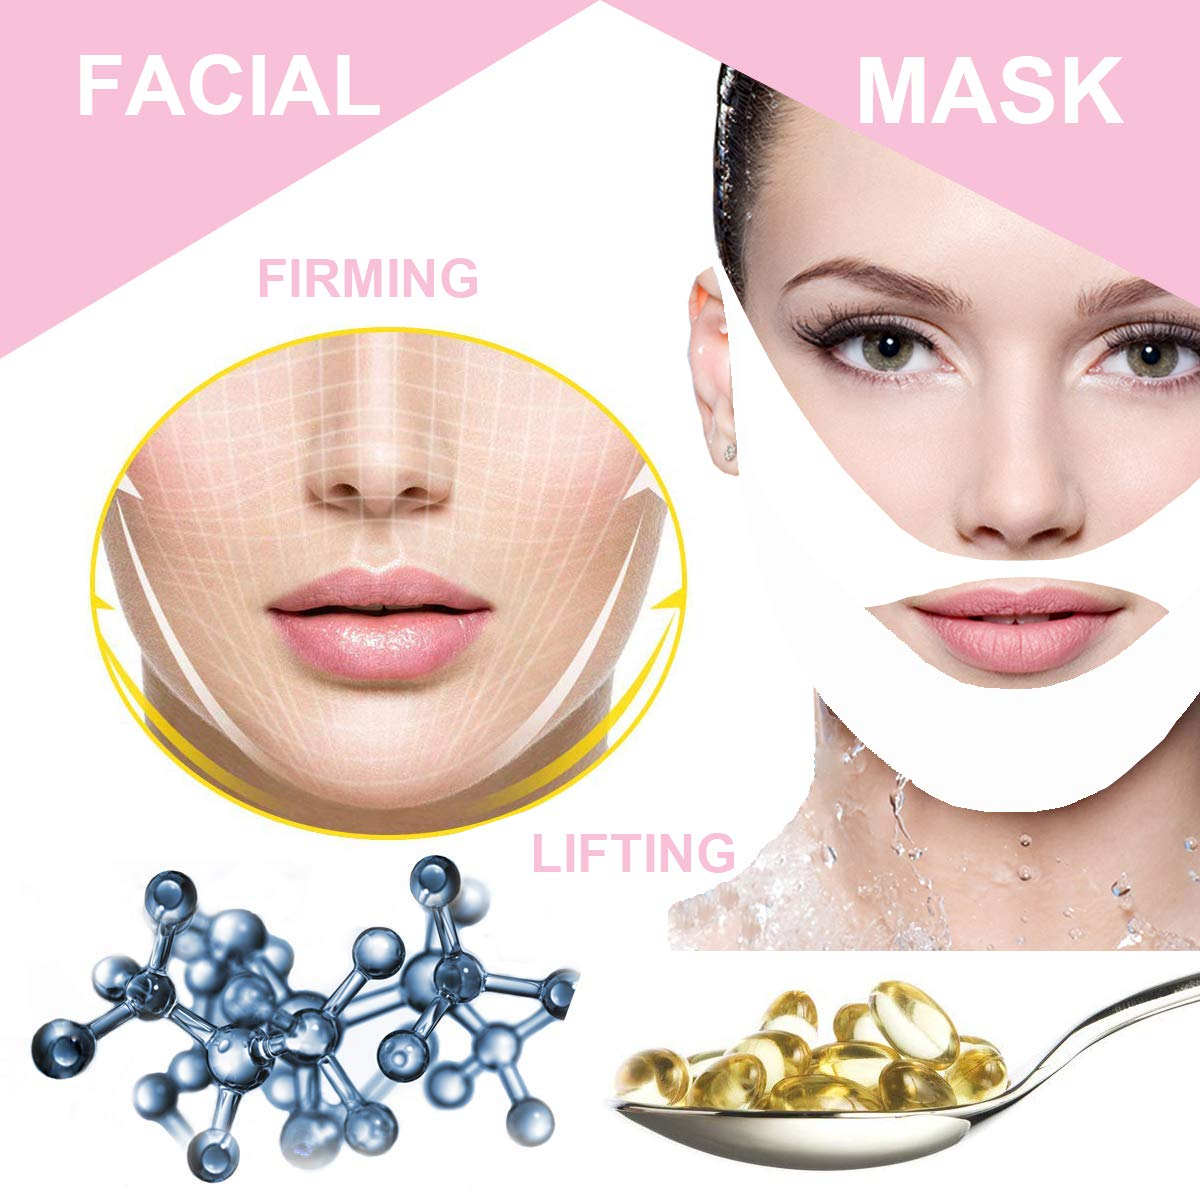 V Line Mask Chin Up Patch Double Chin Reducer | V Line Lifting Face Neck Mask | Tightening Firming Moisturizing Collagen Chin Mask | V Shape Face Lifting V Zone Mask Tape Set of 5 Pack